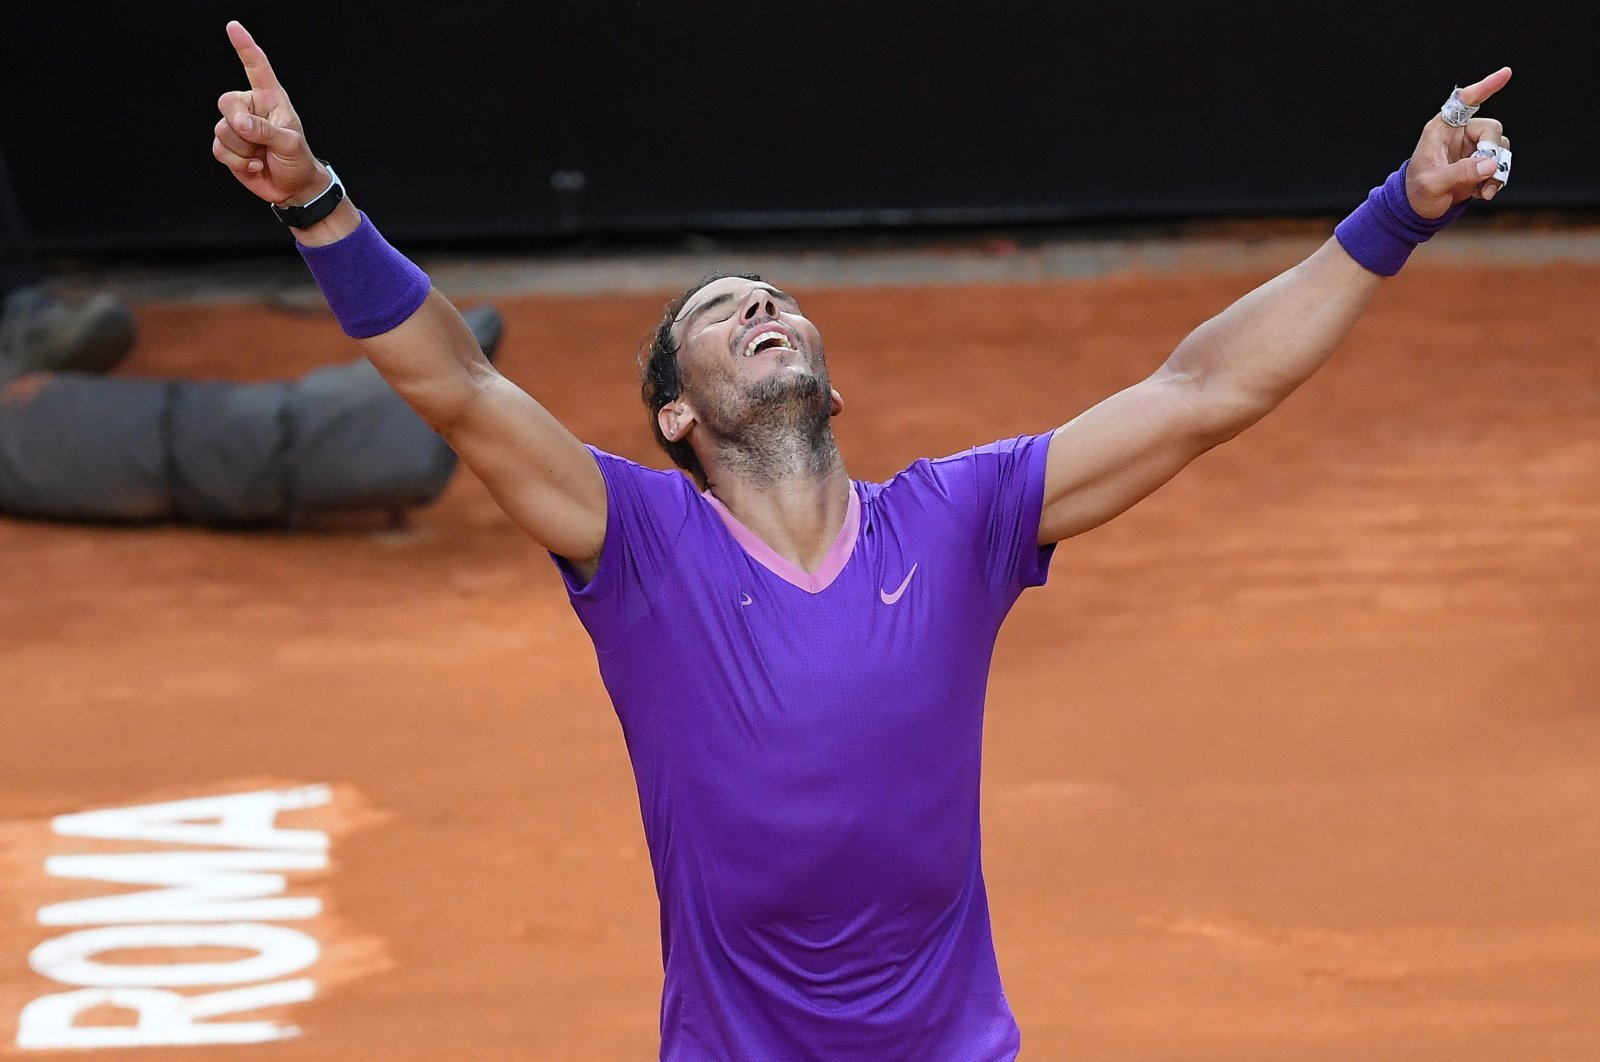 Rafael Nadal of Spain celebrates after winning his men's singles final against Novak Djokovic of Serbia at the Italian Open tennis tournament in Rome, Italy, May 16, 2021.  (EPA Photo)